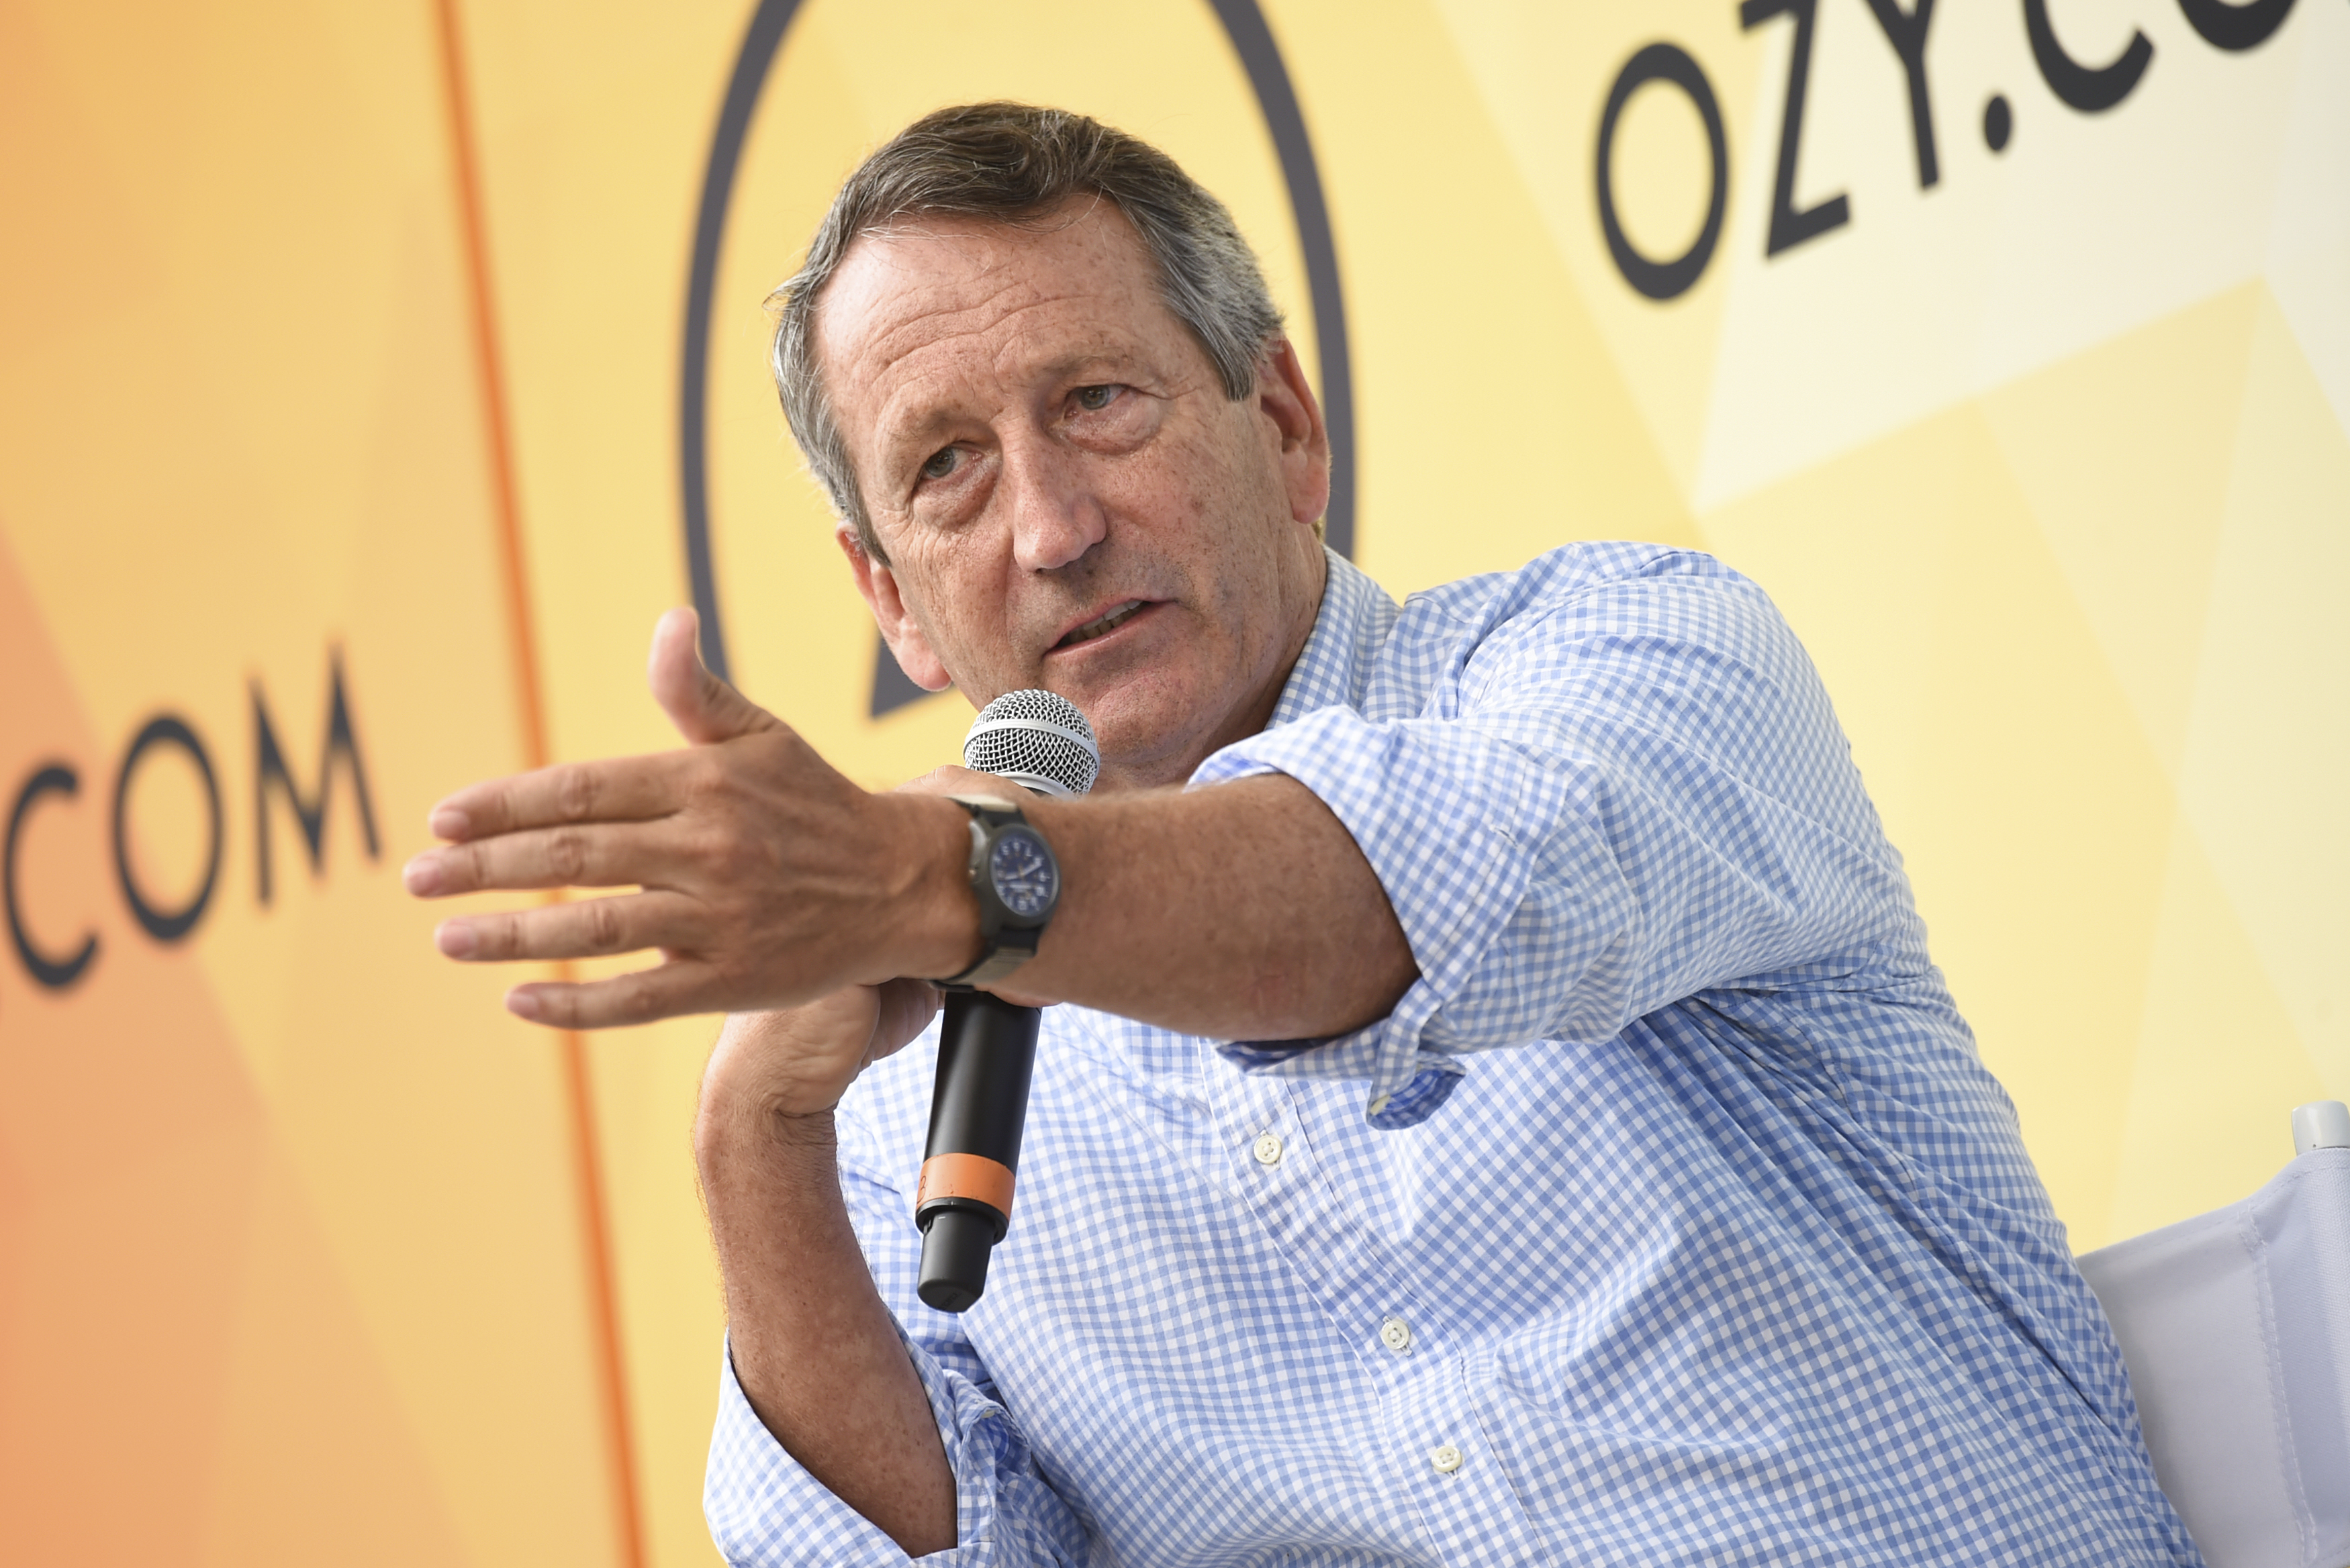 Sanford says he's 'growing ever closer' to challenging Trump in GOP primaries